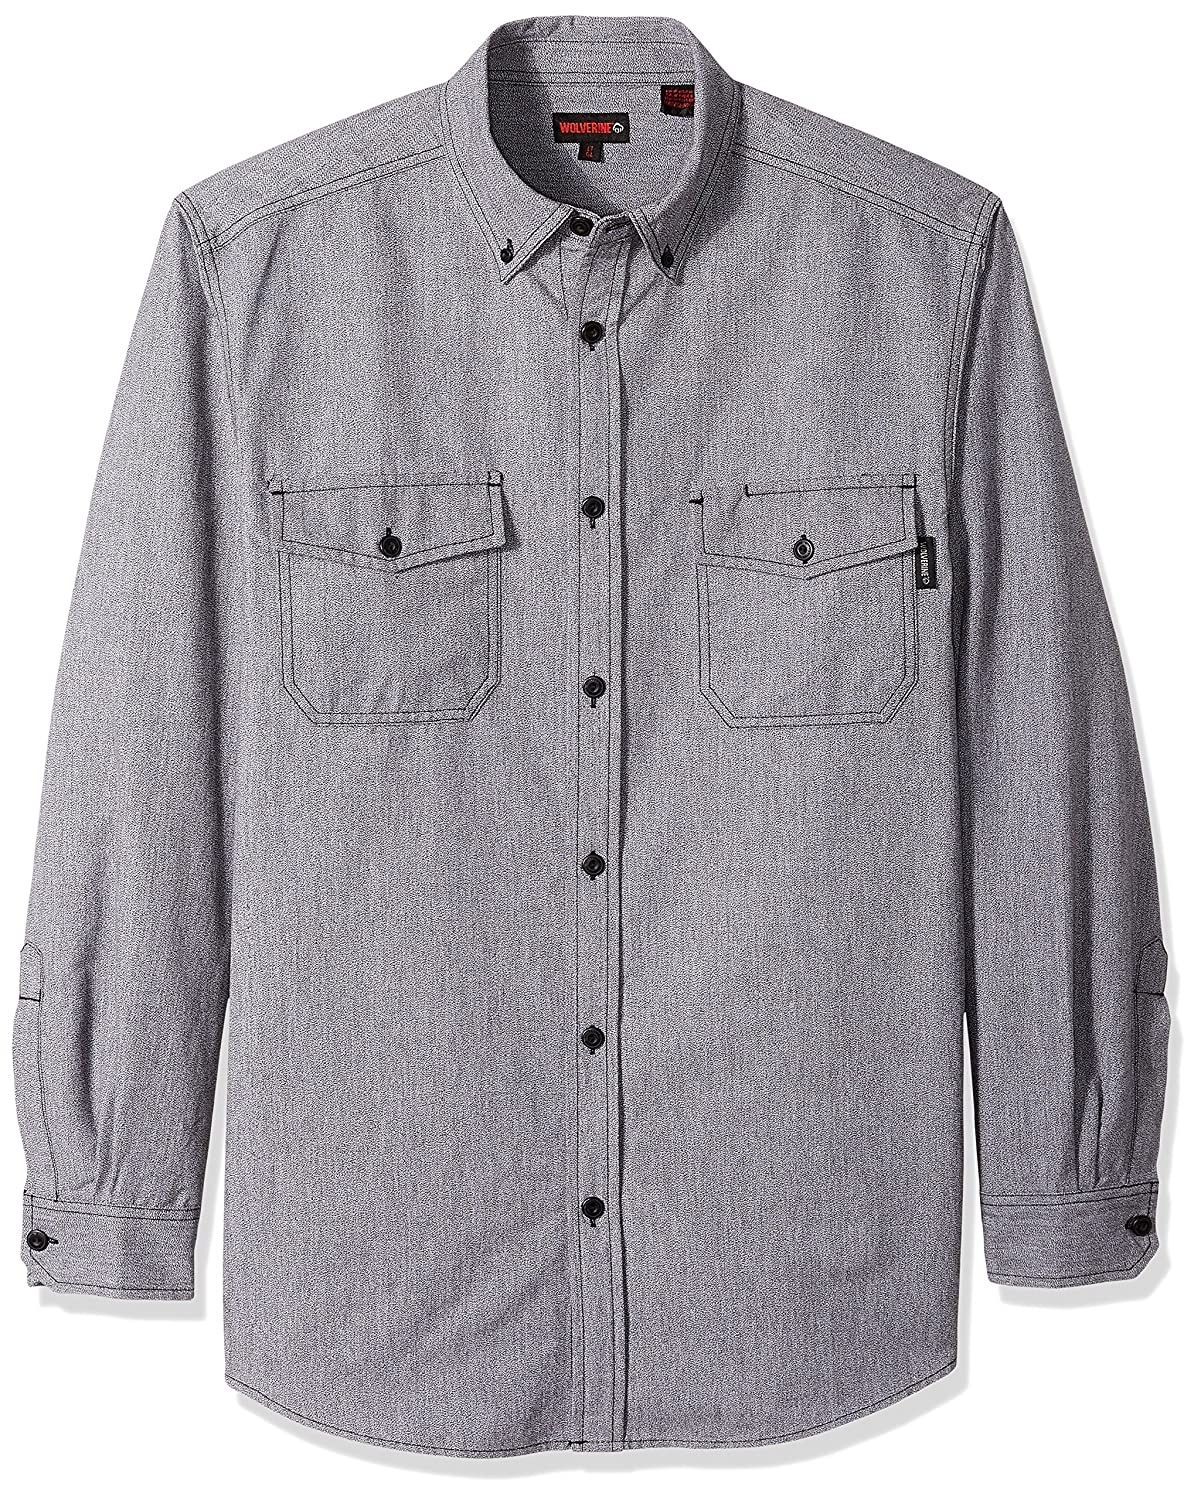 Wolverine SHIRT メンズ B071GXVS2S X-Large Tall|グレー グレー X-Large Tall